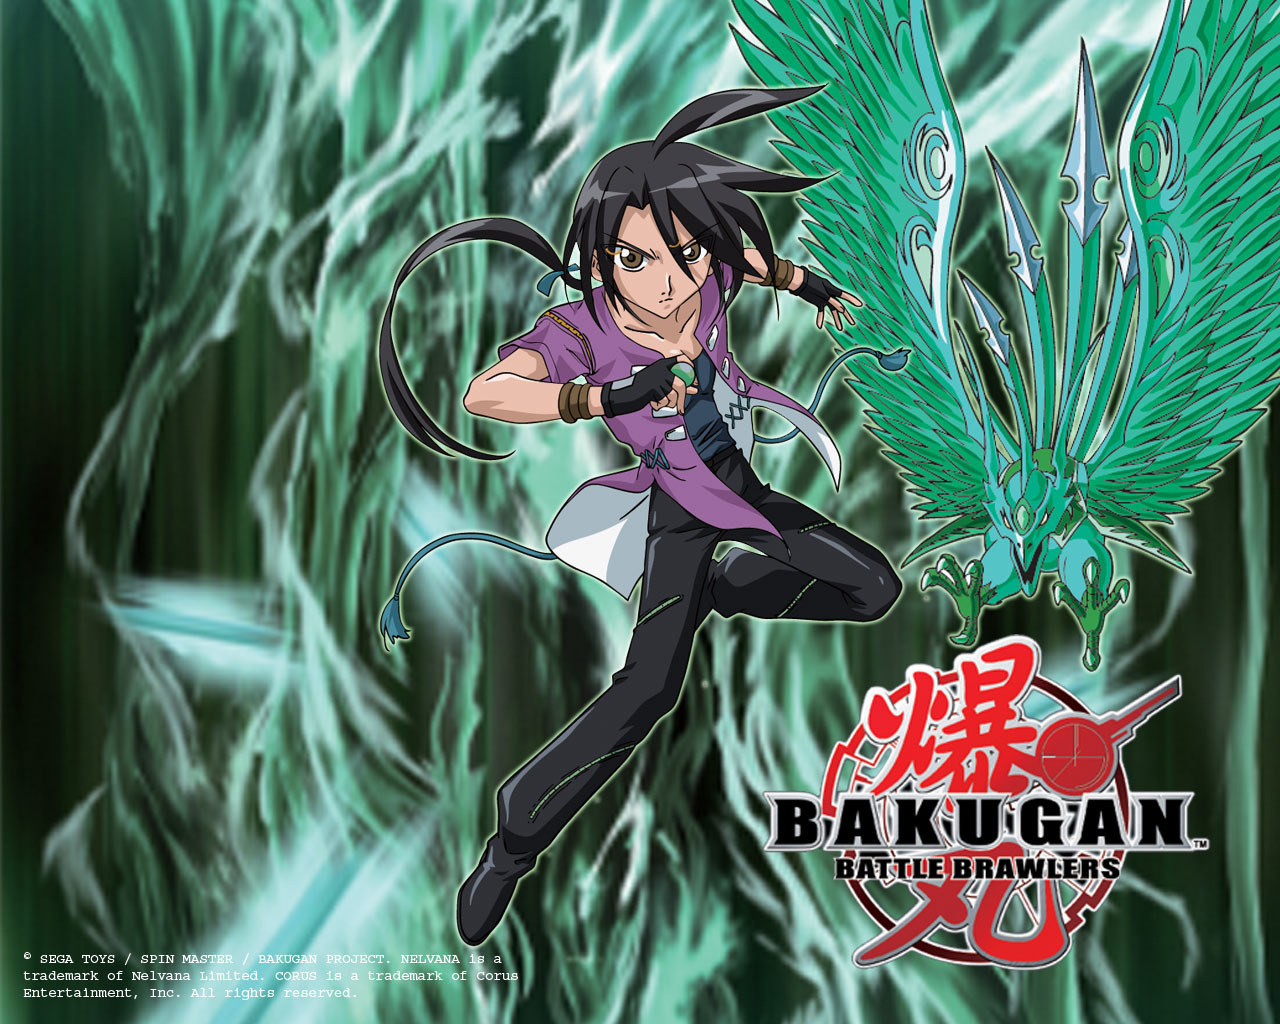 vivek - Bakugan Battle Brawlers 1280x1024